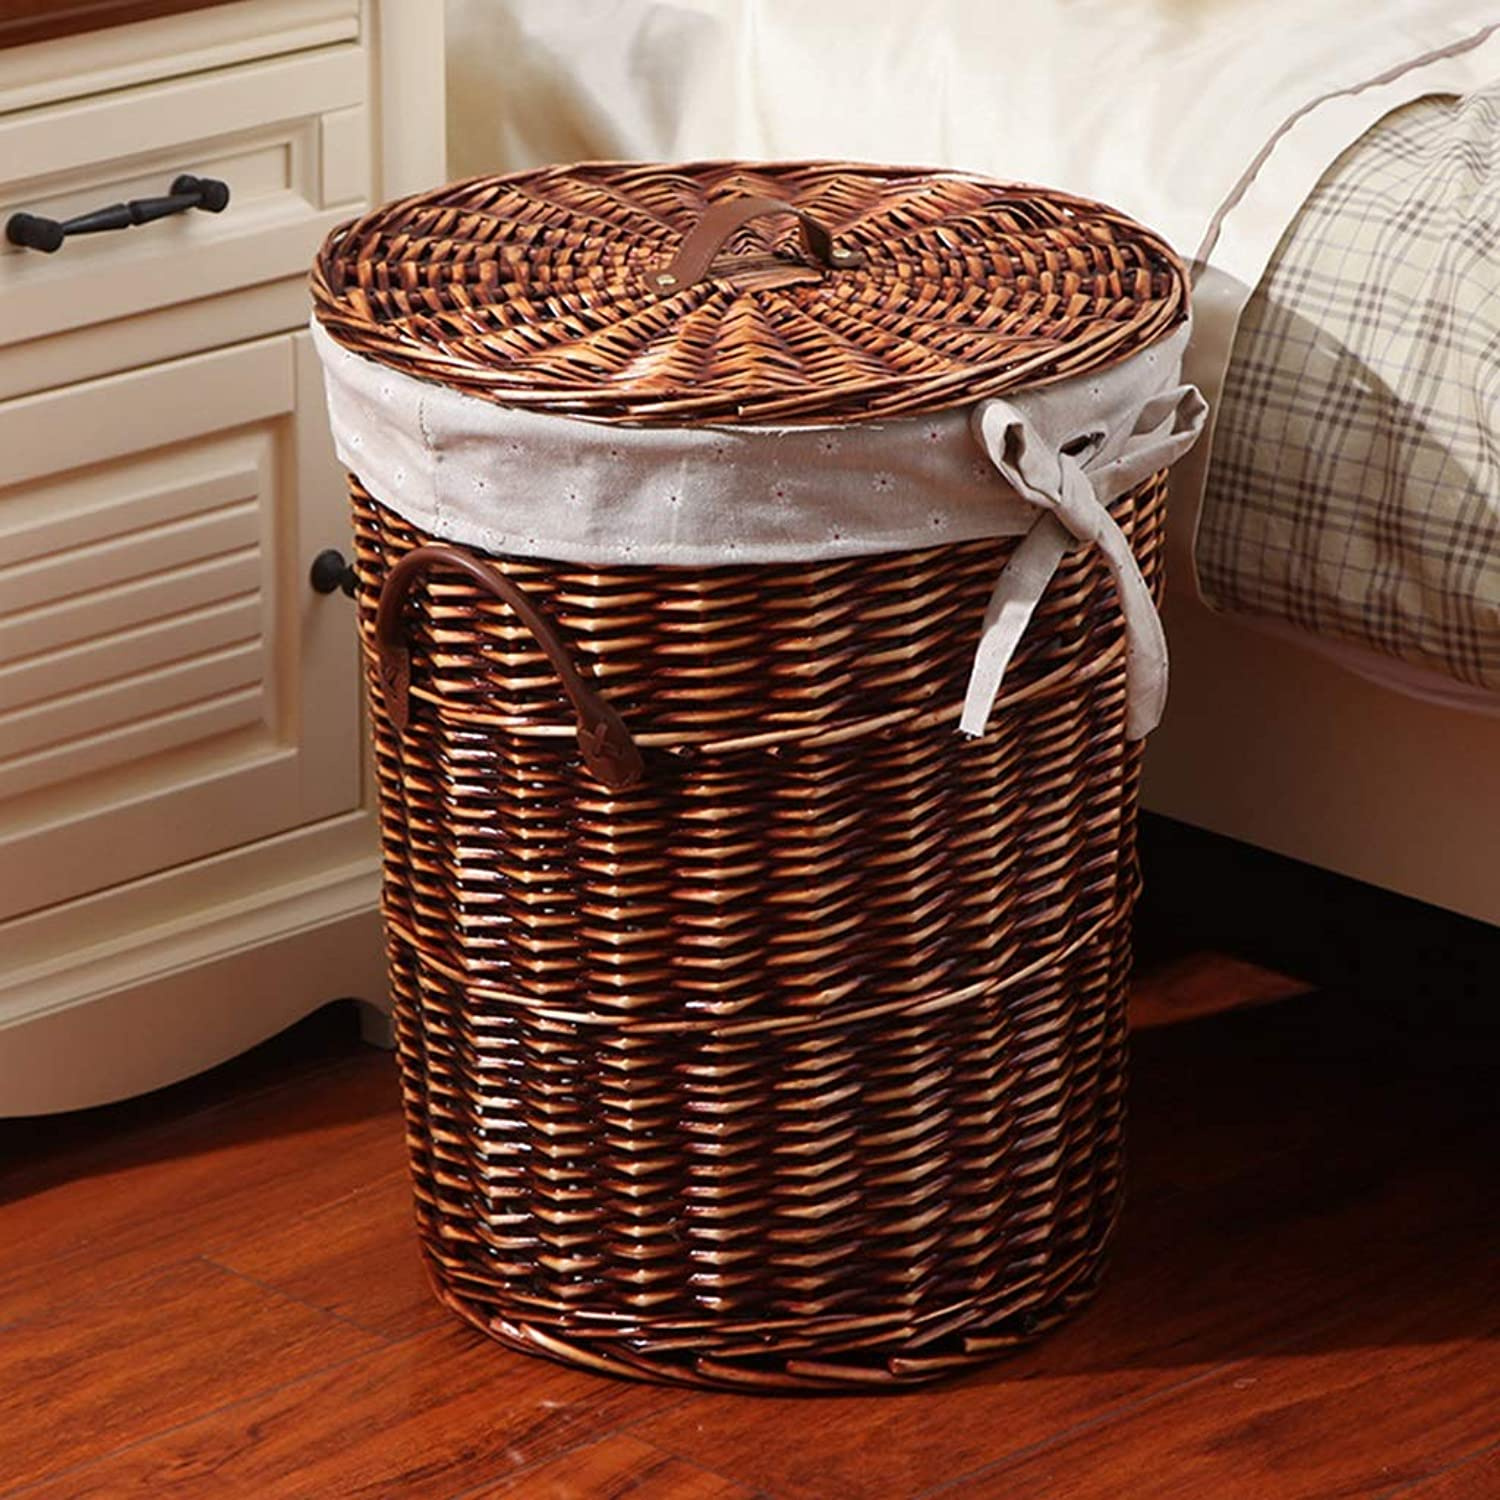 ZDNALS Household Toys, Garbage Storage Basket, Rattan Hamper Basket - A Variety of Optional Storage Basket (color   A, Size   38×30cm)